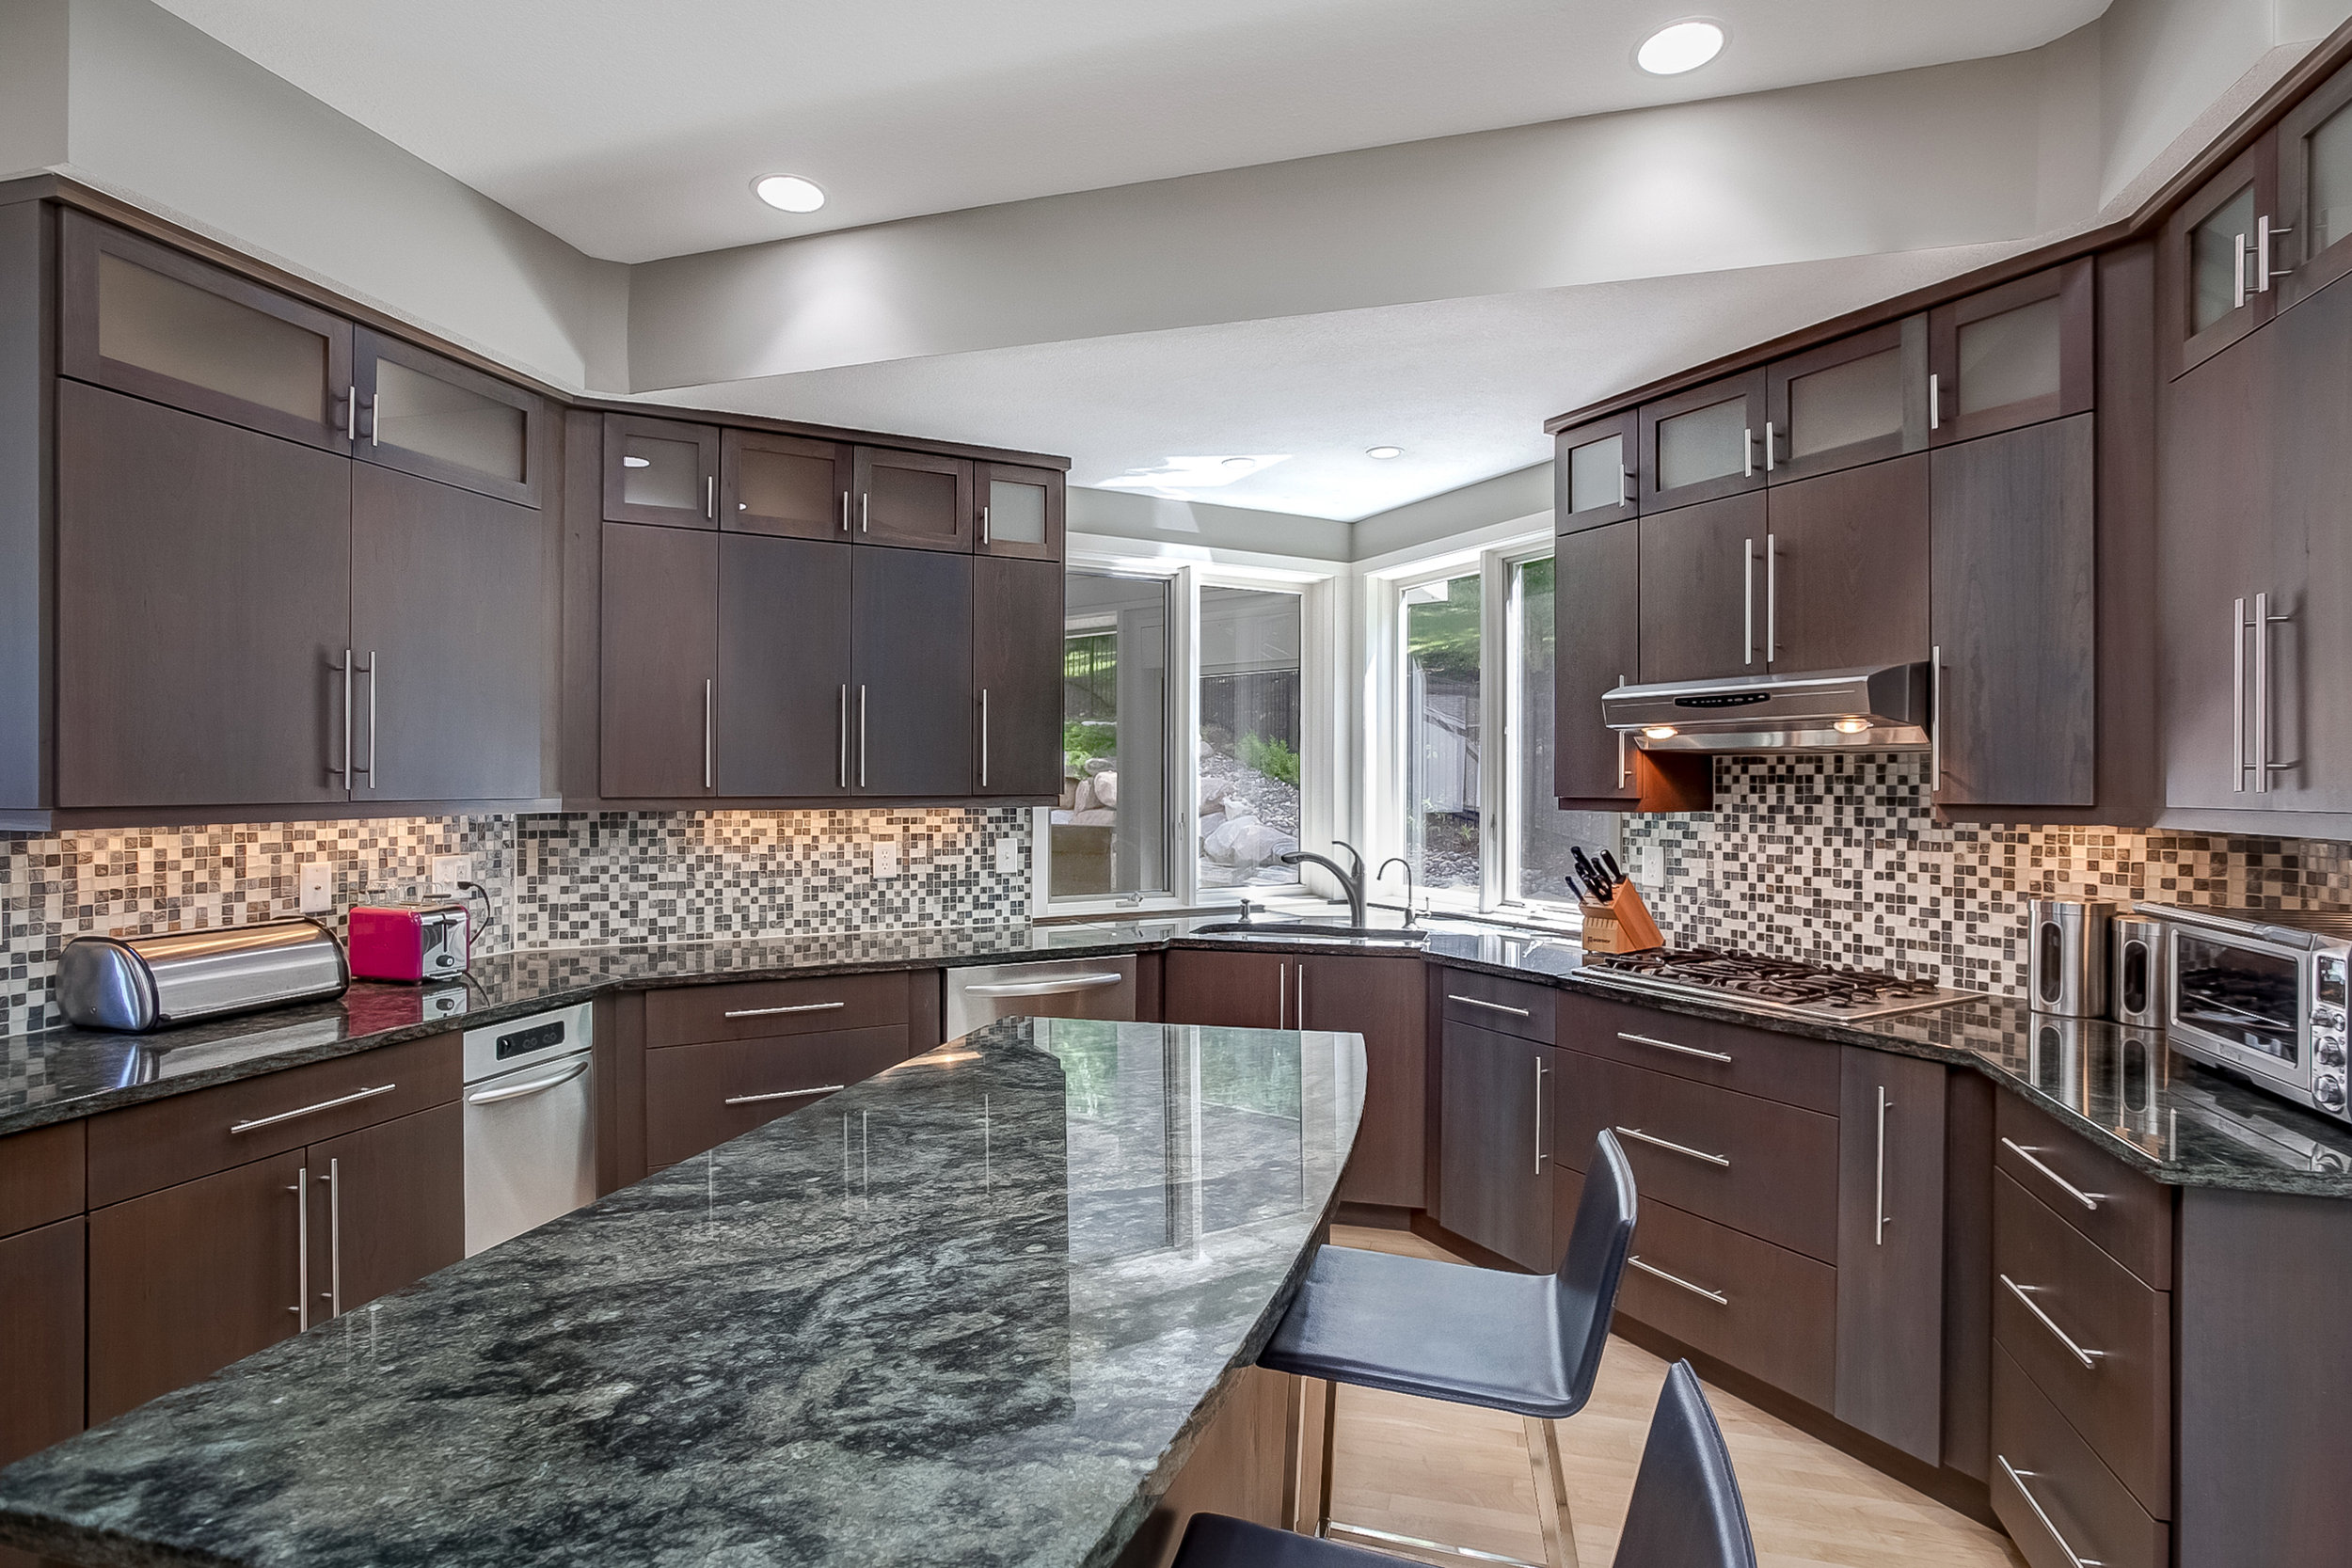 kitchen from in between dining and fridge.jpg